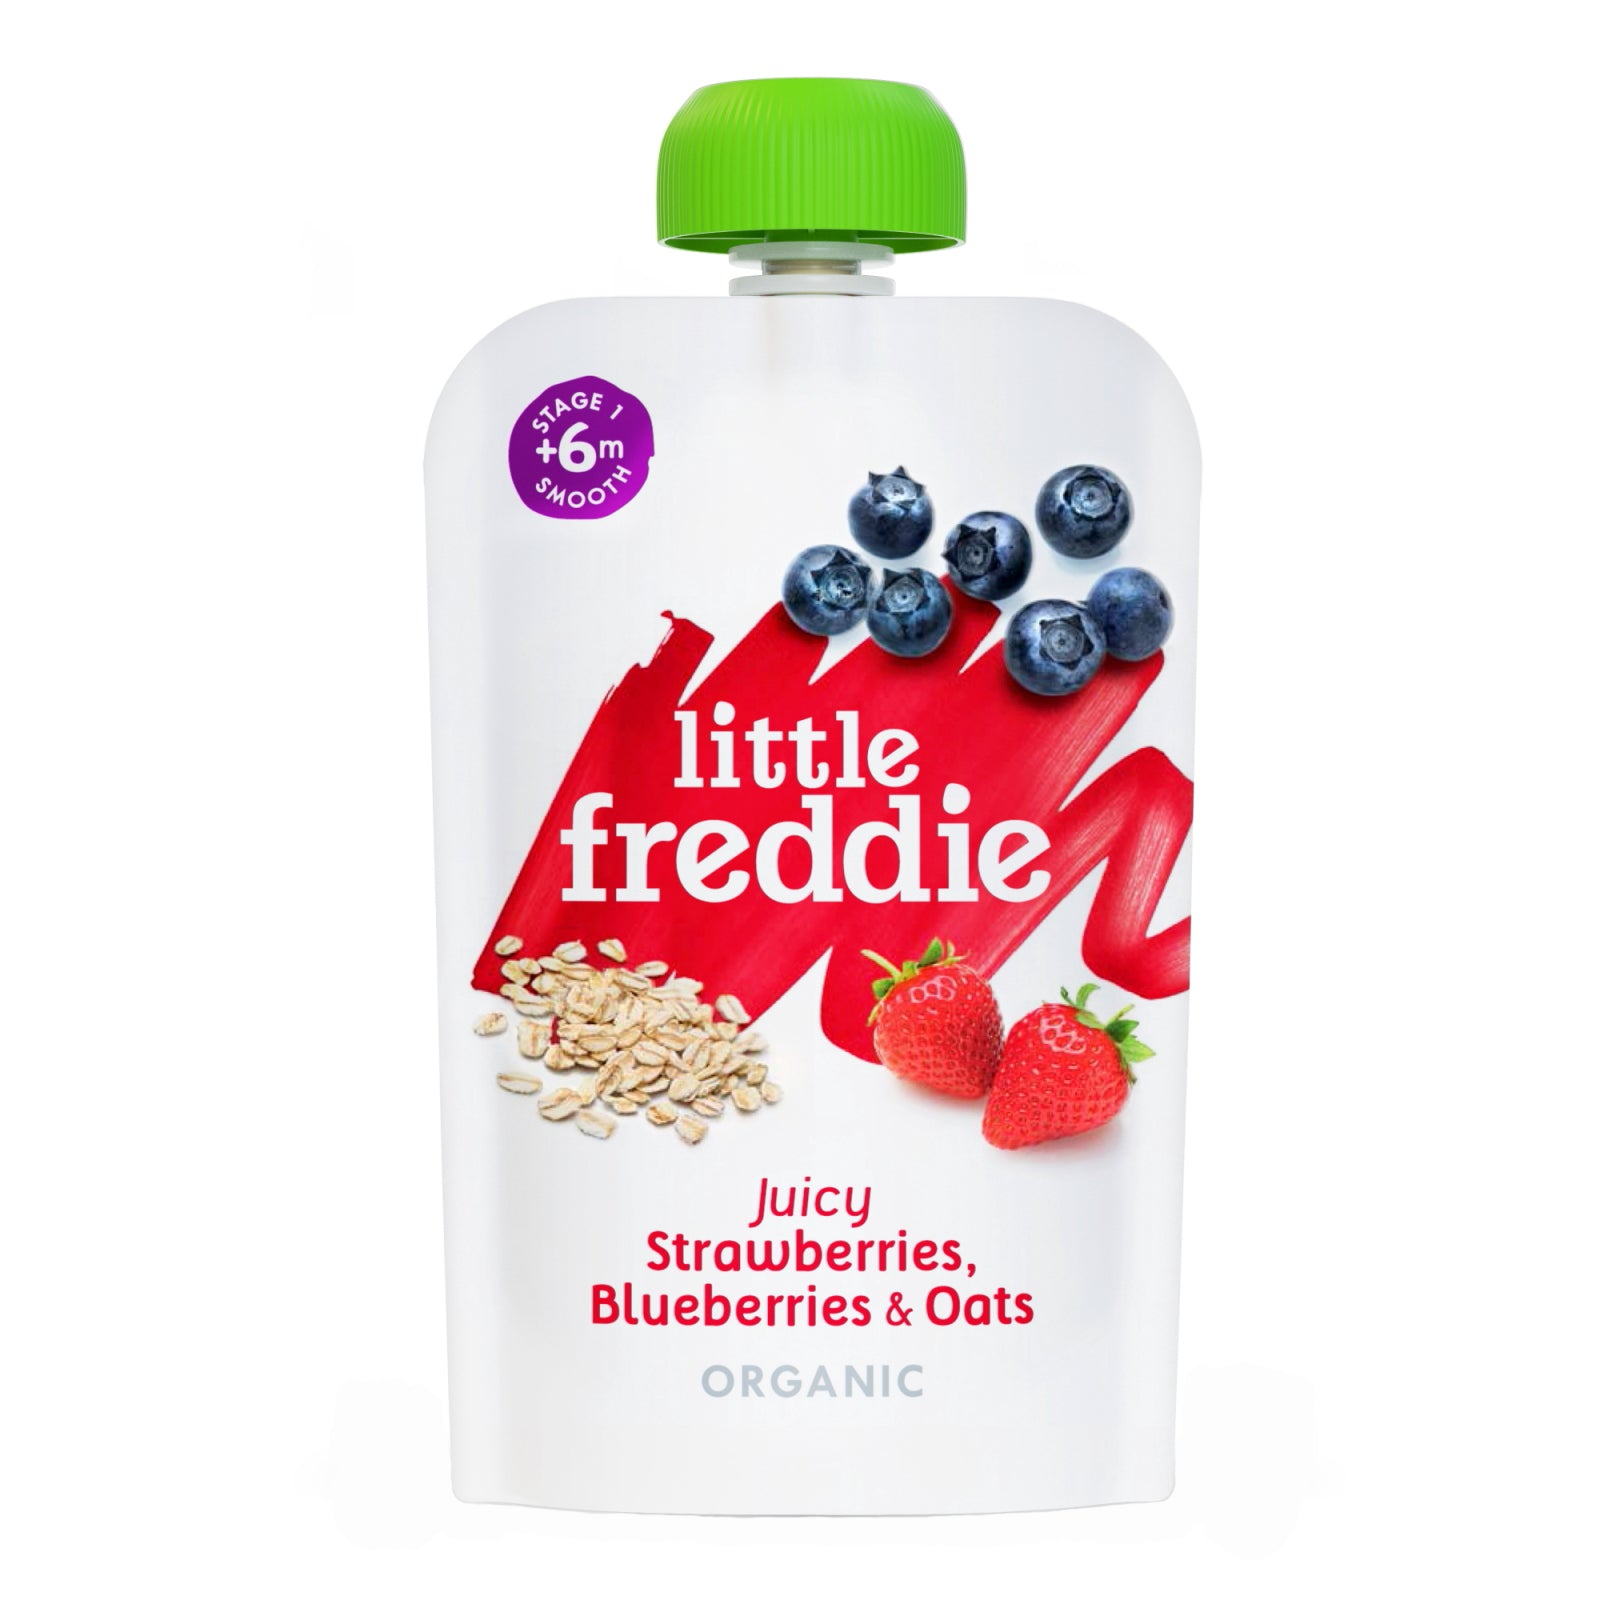 Little Freddie Juicy Strawberries , Blueberries & Oats - 100g.